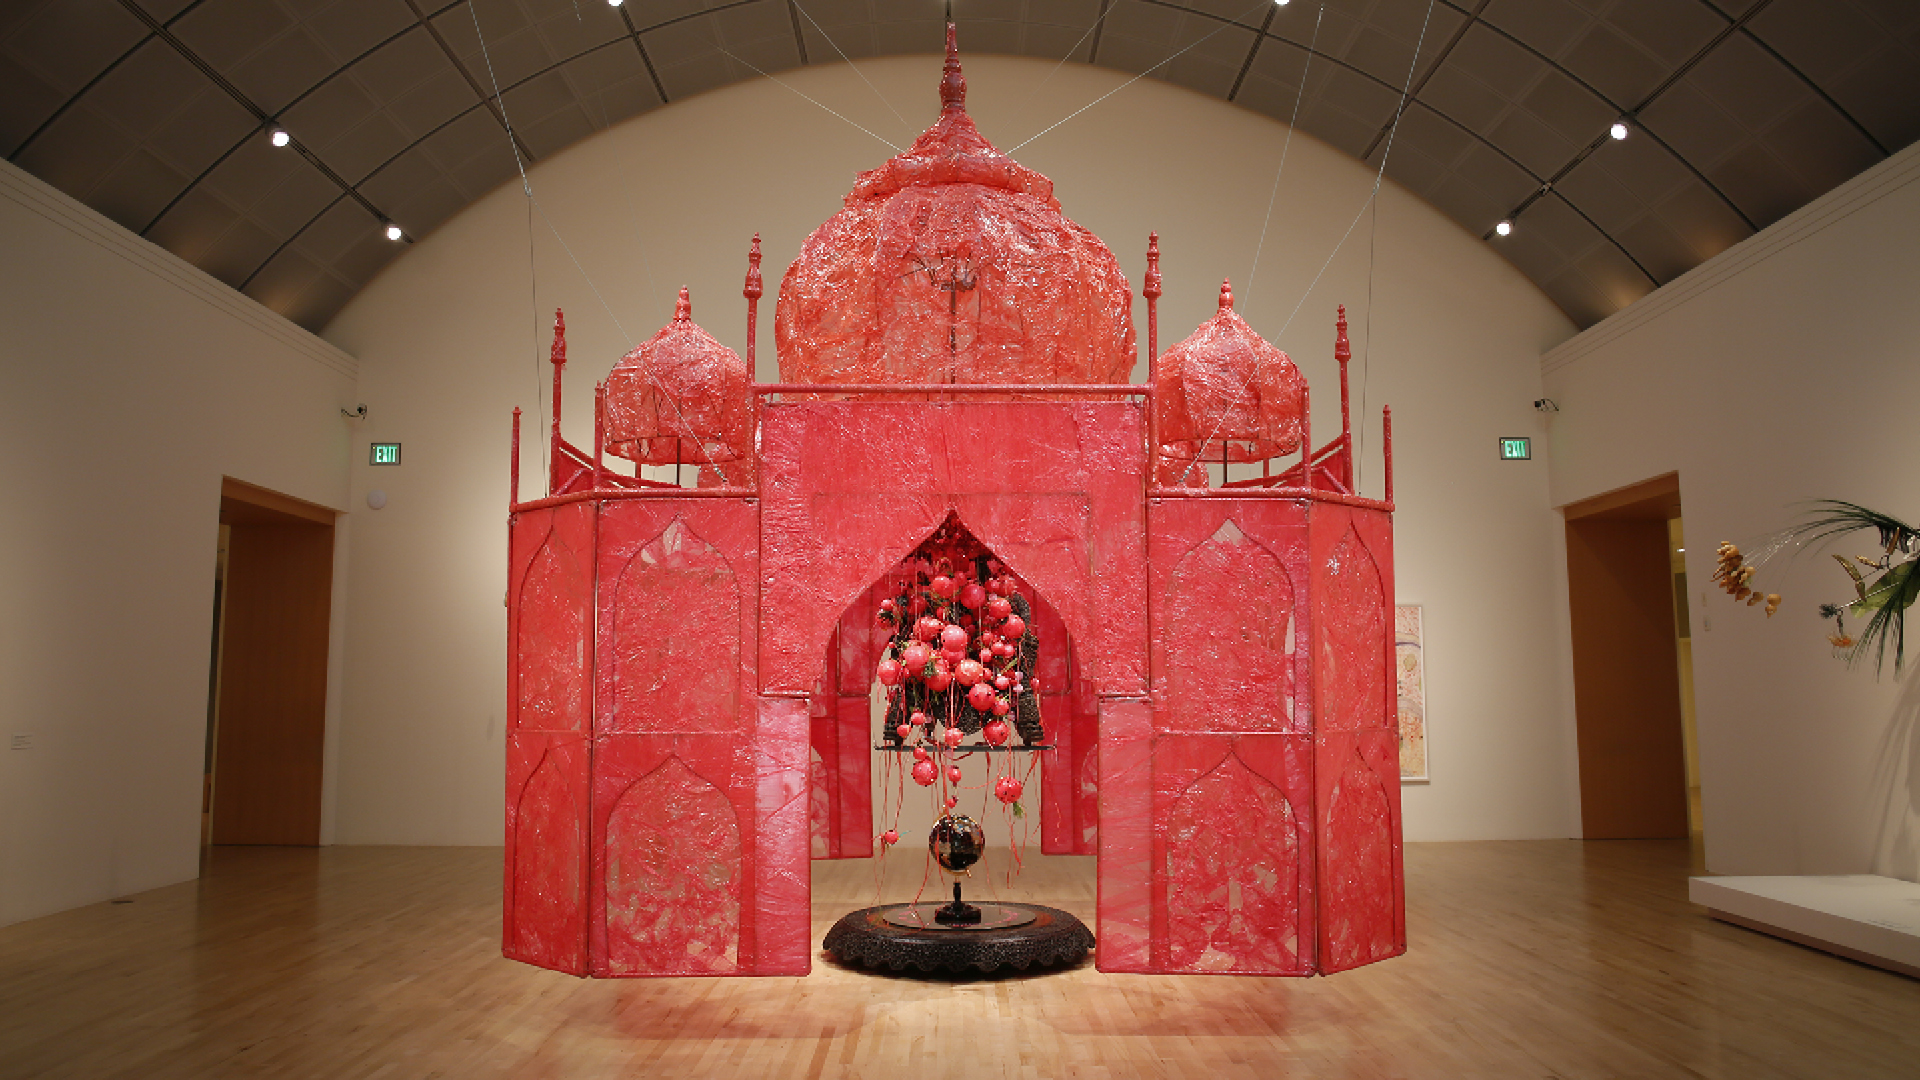 Rina Banerjee, Installation view of Take me, take me, take me...to the Palace of love, 2003 | Make Me a Summary of the World | Rina Banerjee | STIR